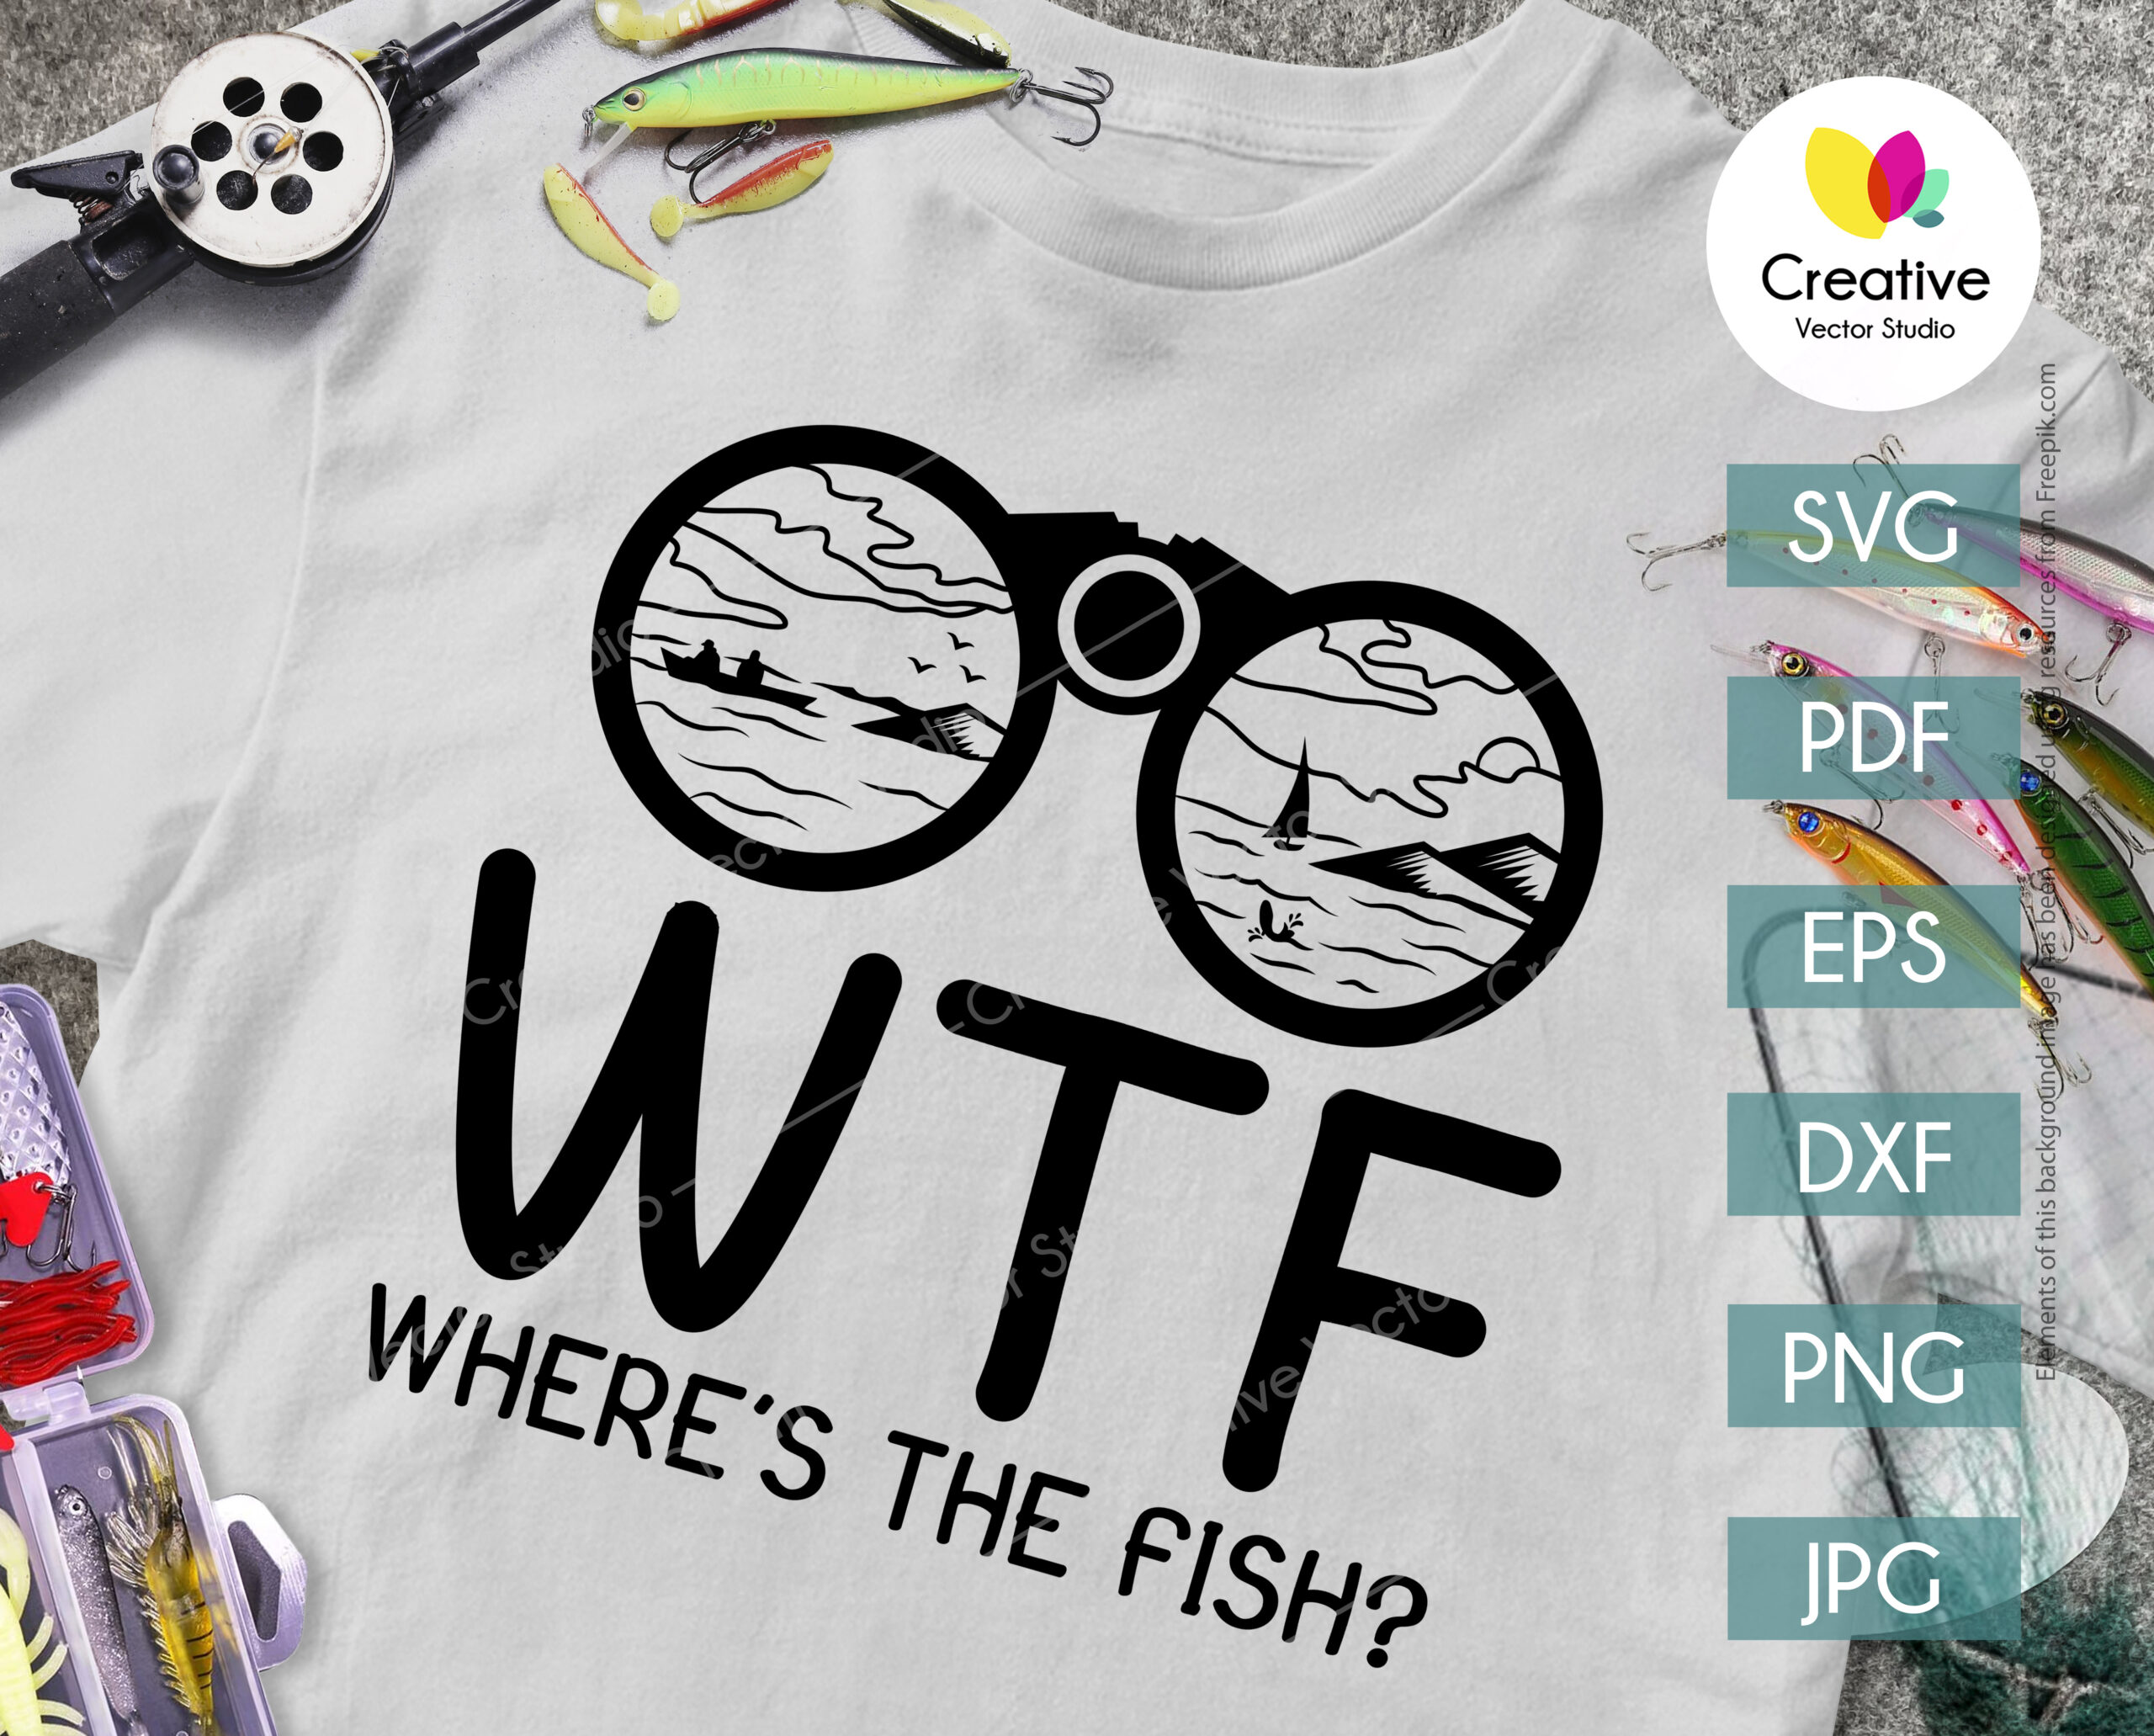 Download 12 Fishing Bundle Svg Svg Cut Files T Shirt Svg Fishing Designs Svg Fishing Quotes Svg Fishing Svg For Men Go Fishing Svg Fish Clipart Clip Art Art Collectibles Sultraline Id